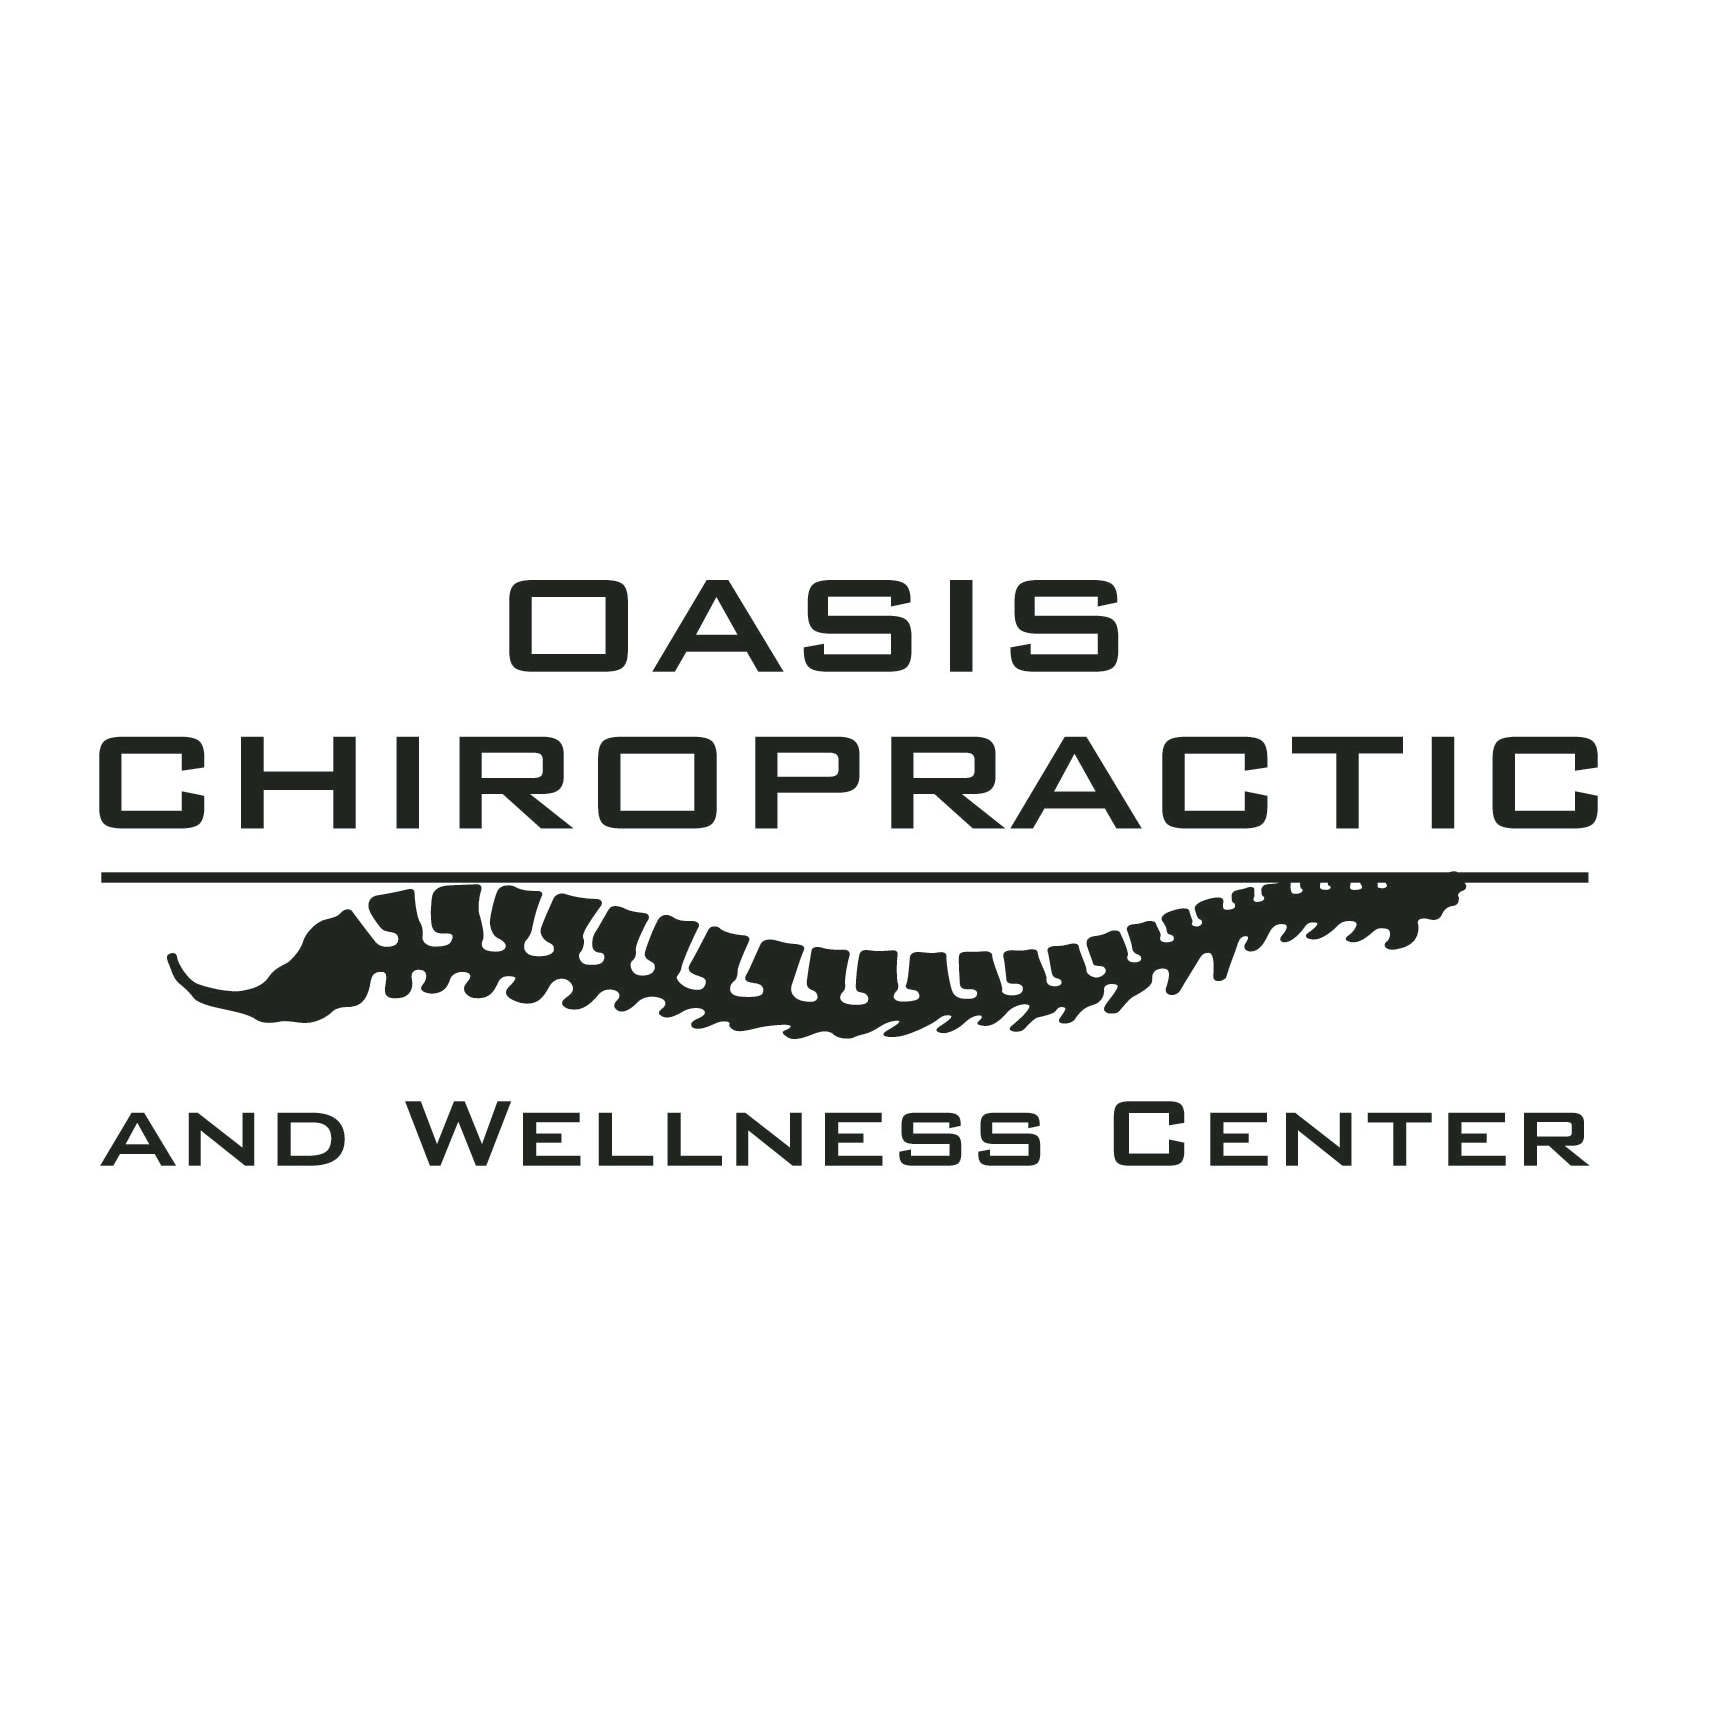 Oasis Chiropractic and Wellness Center